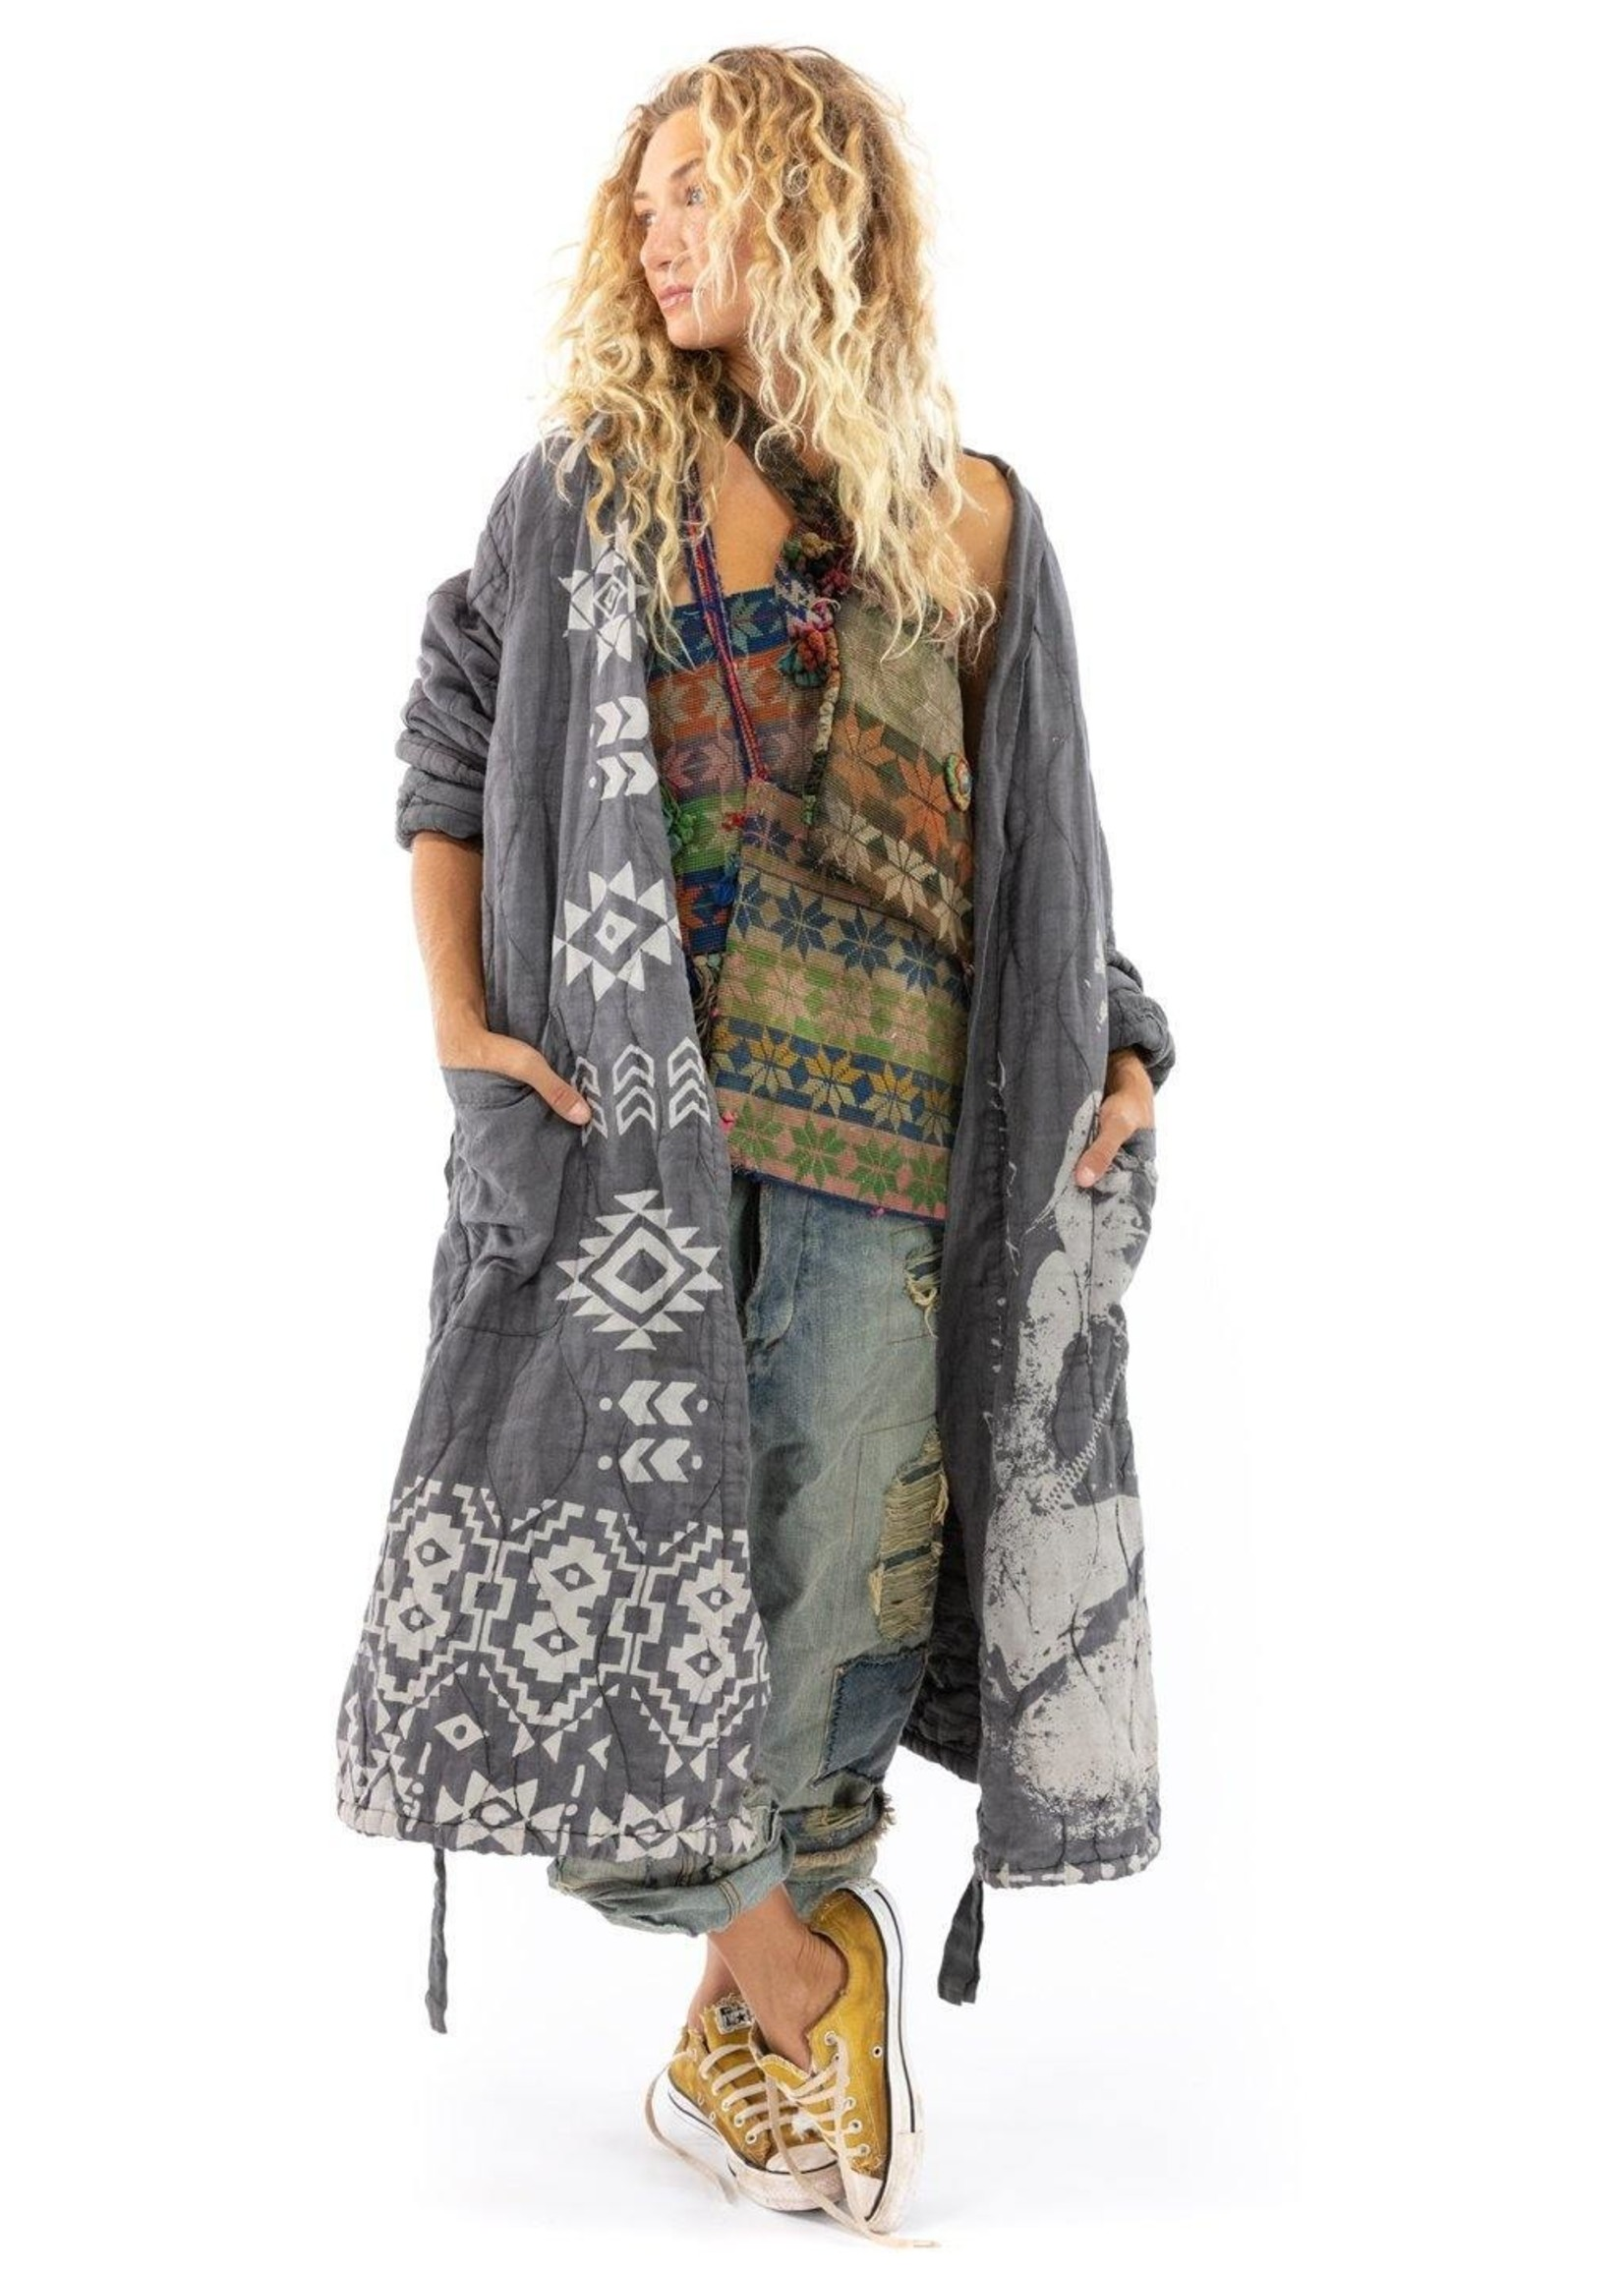 Magnolia Pearl Native Art Quilted Oro Coat - Ozzy